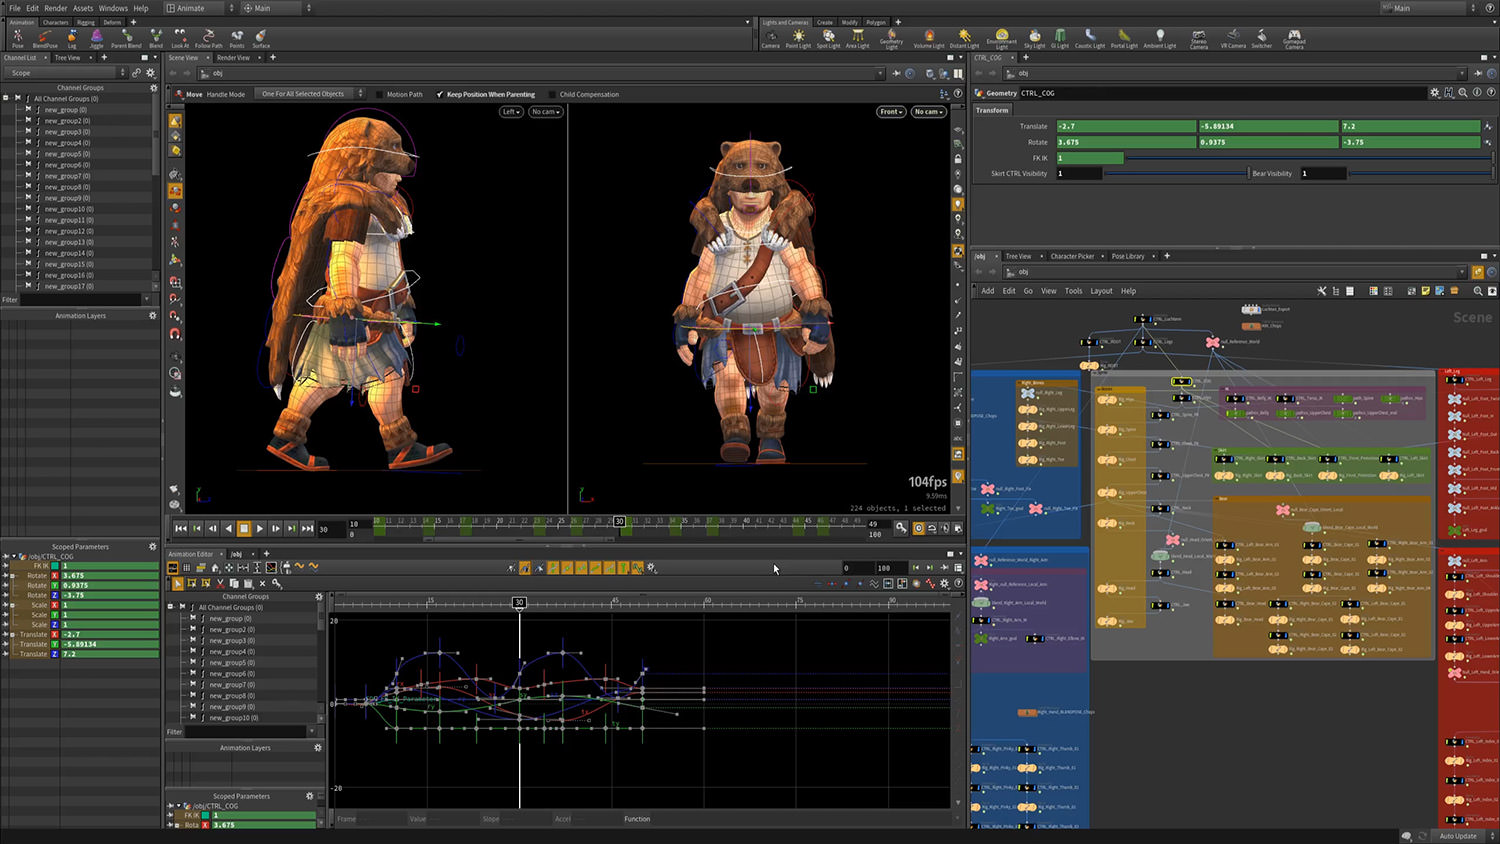 Houdini by Side Effects Software